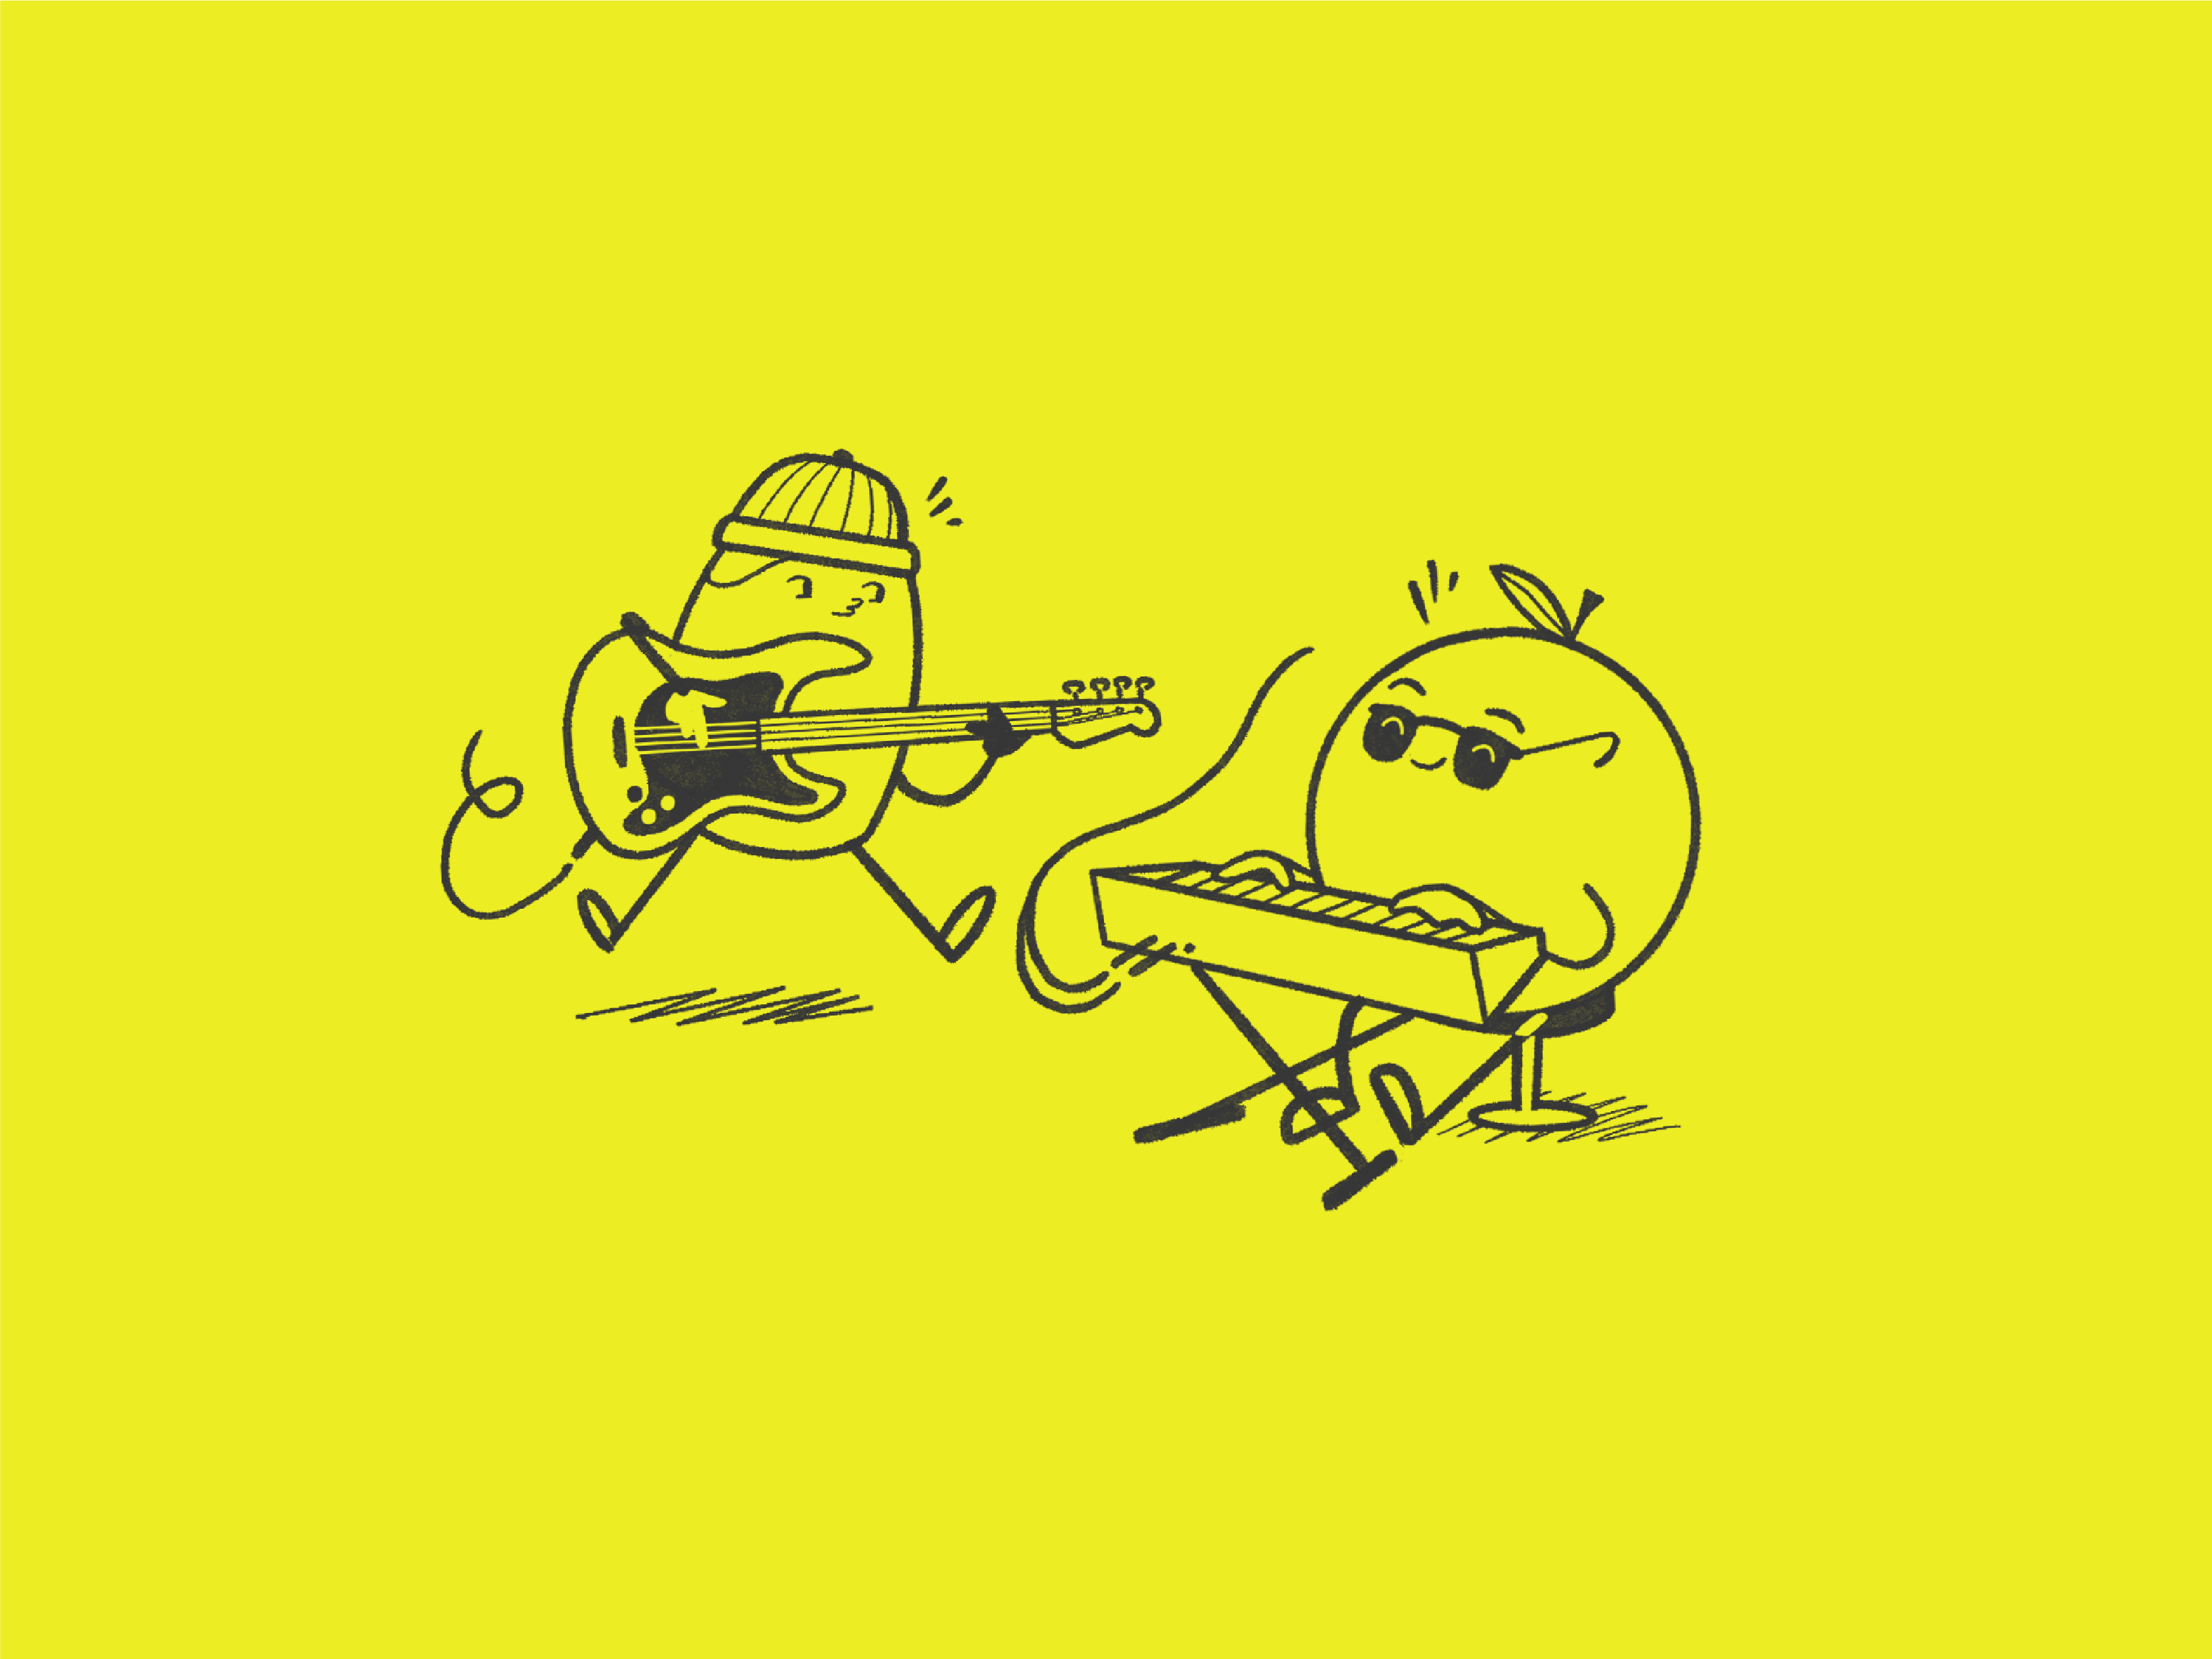 Fun Illustration Band Art and Website Design Designed by Lucas Bell Graphic Designer in Victoria BC Canada